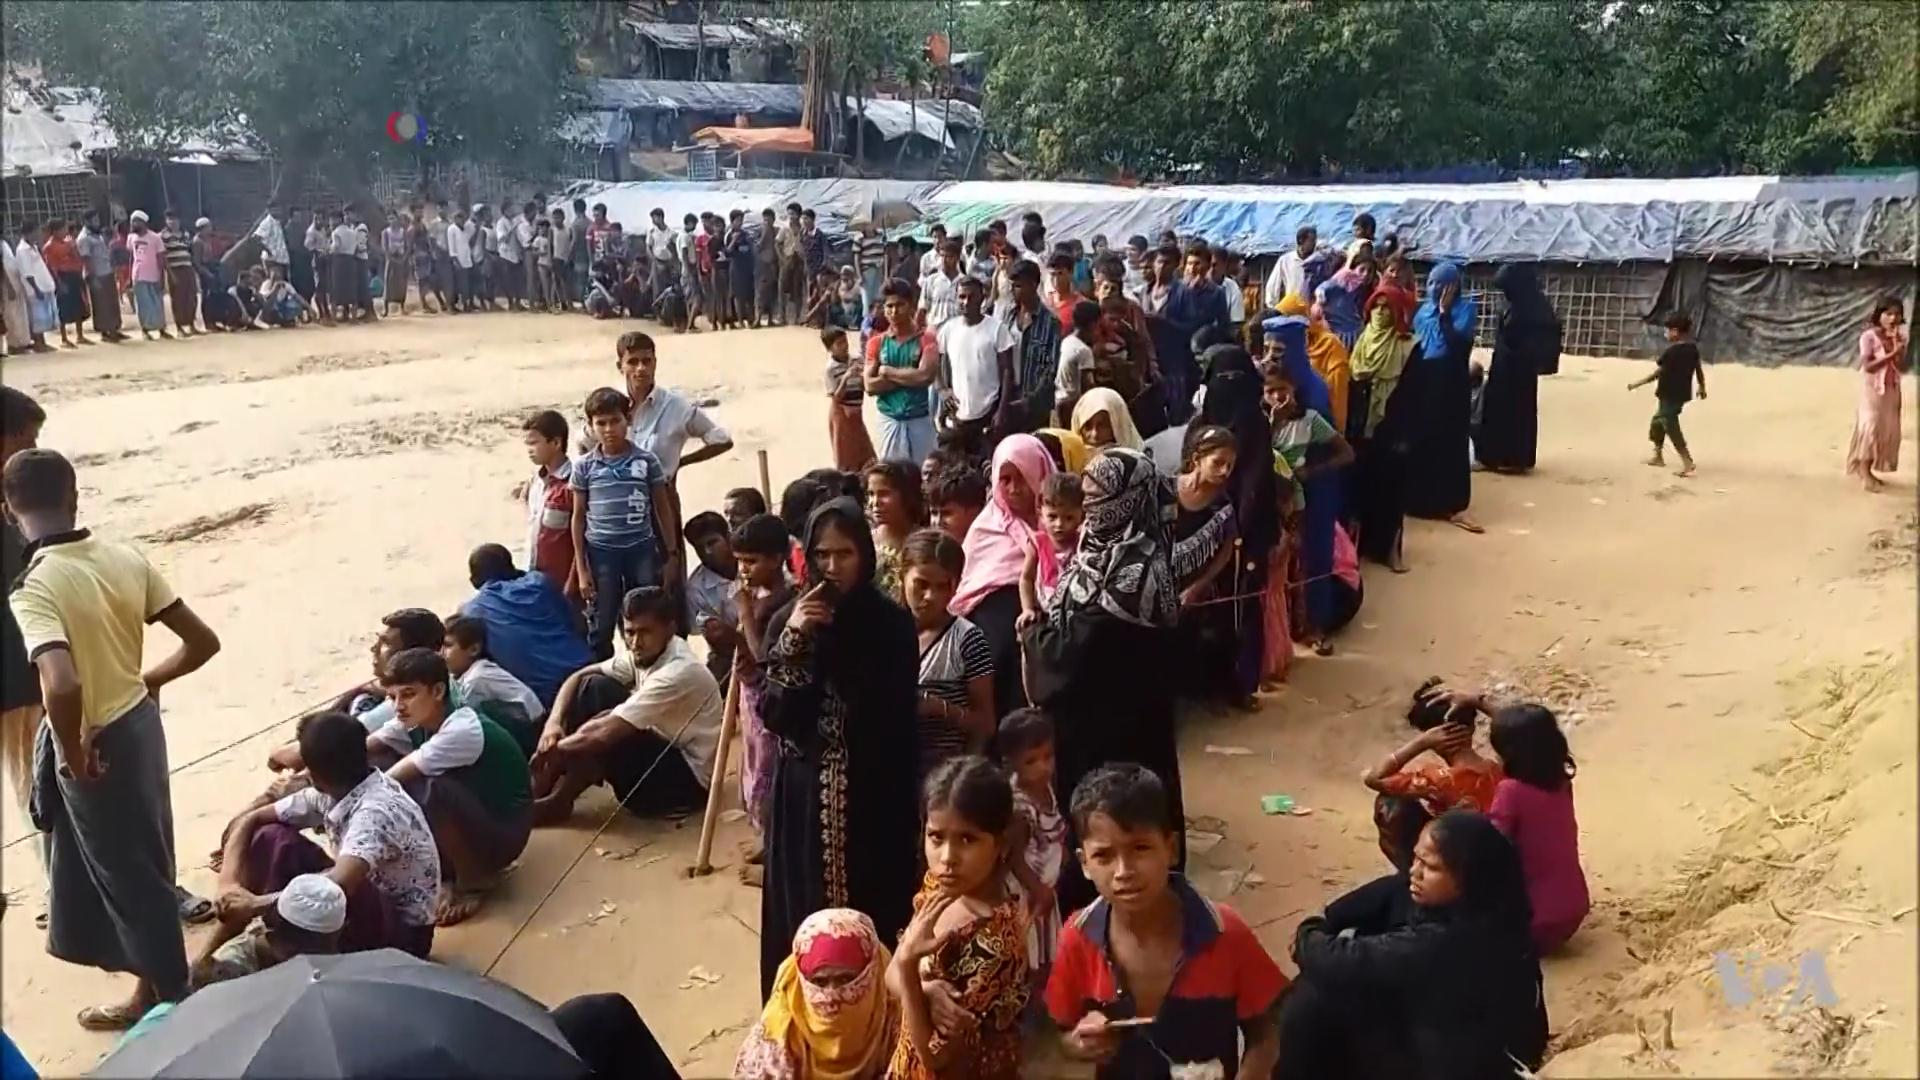 Rohingya refugees in refugee camp